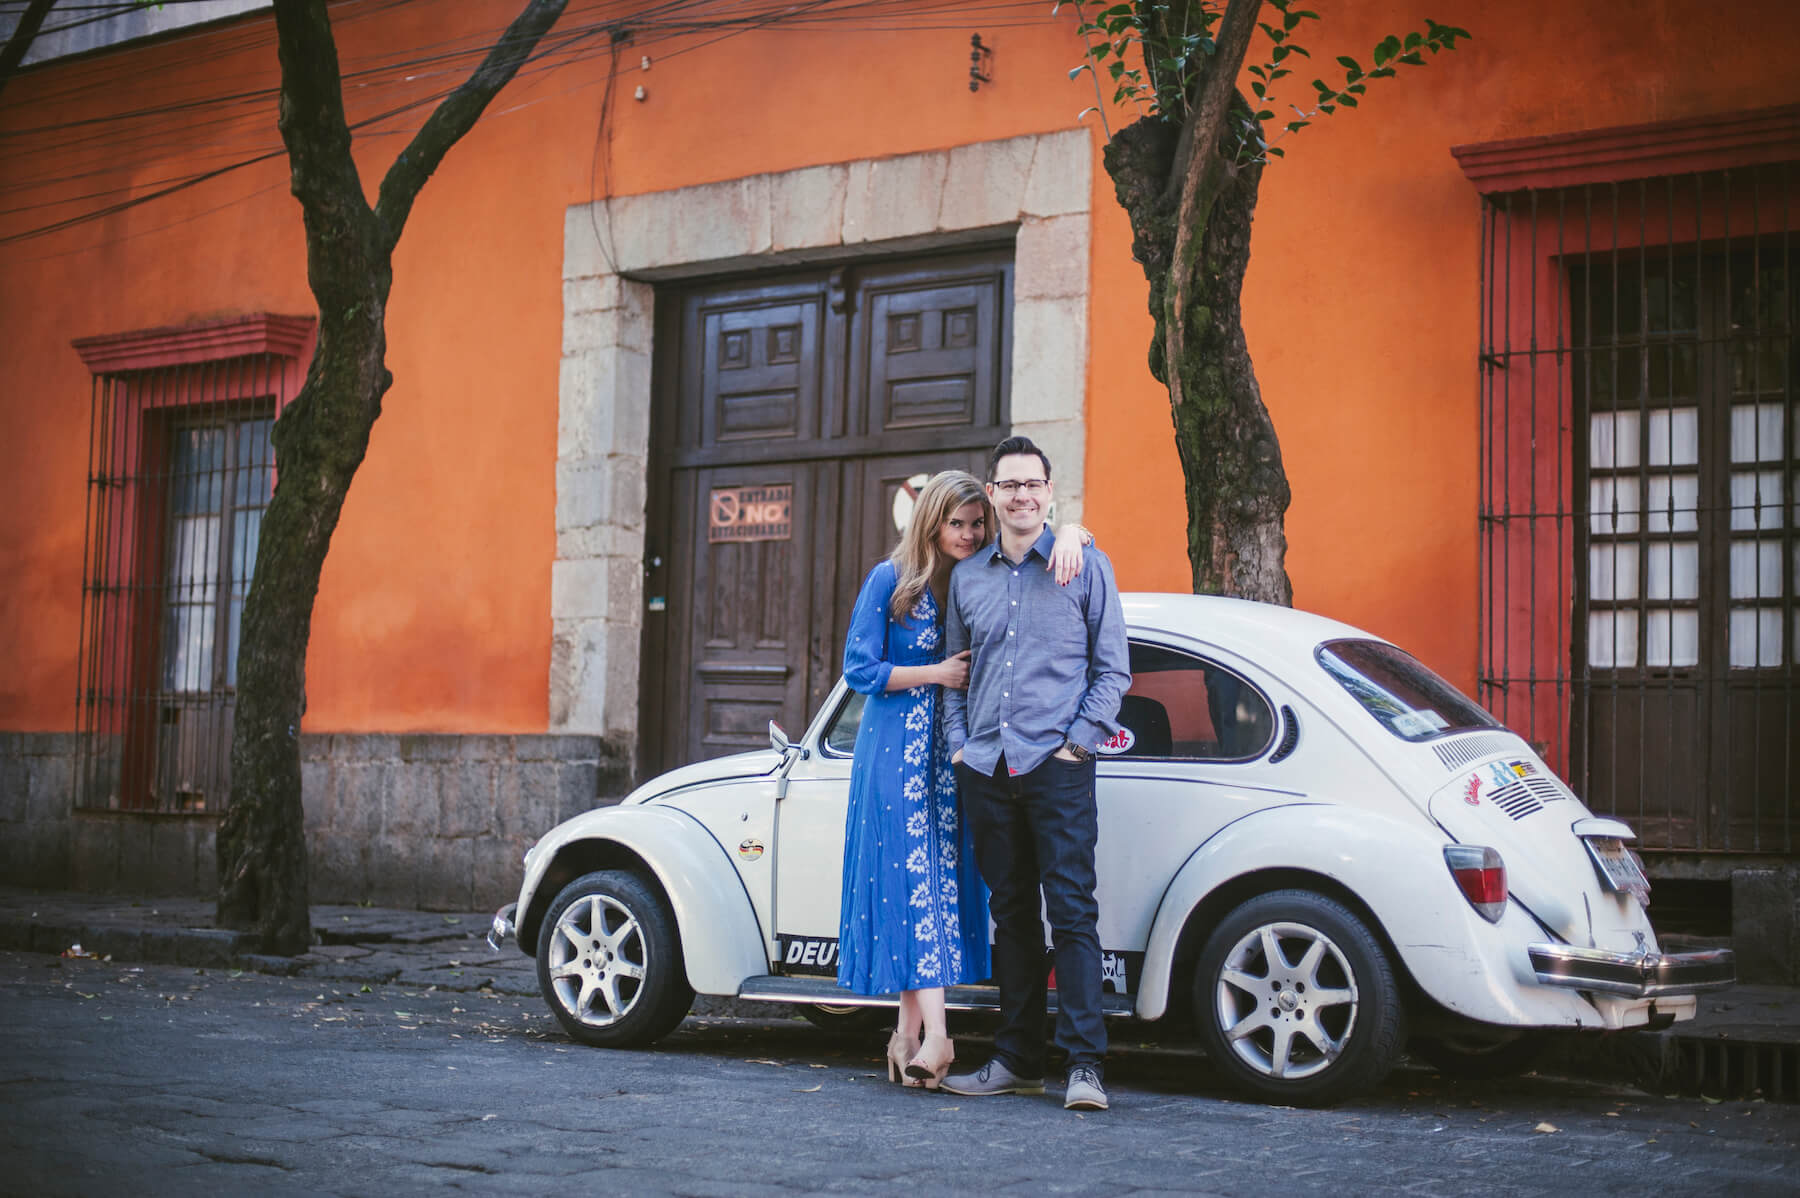 couple hugging each other in front of car in Mexico City, Mexico